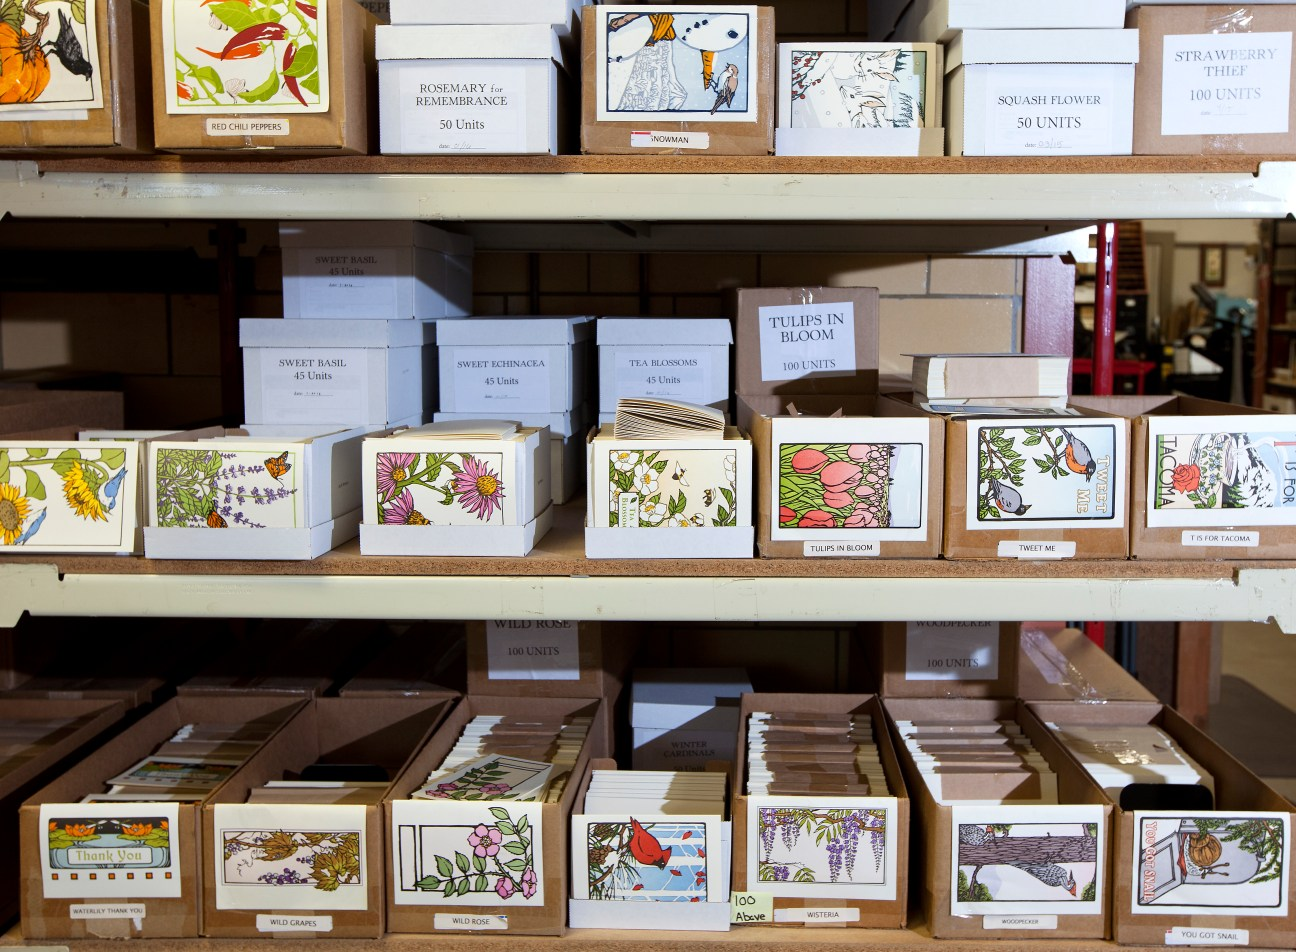 Yoshiko Yamamoto keeps her stock organized to ensure good supply of notecards available for purchase through The Arts & Crafts Press storefront and online. Customers enjoy the vibrant images featuring natural themes from Tacoma and around the world. (Photos by Patrick Hagerty)